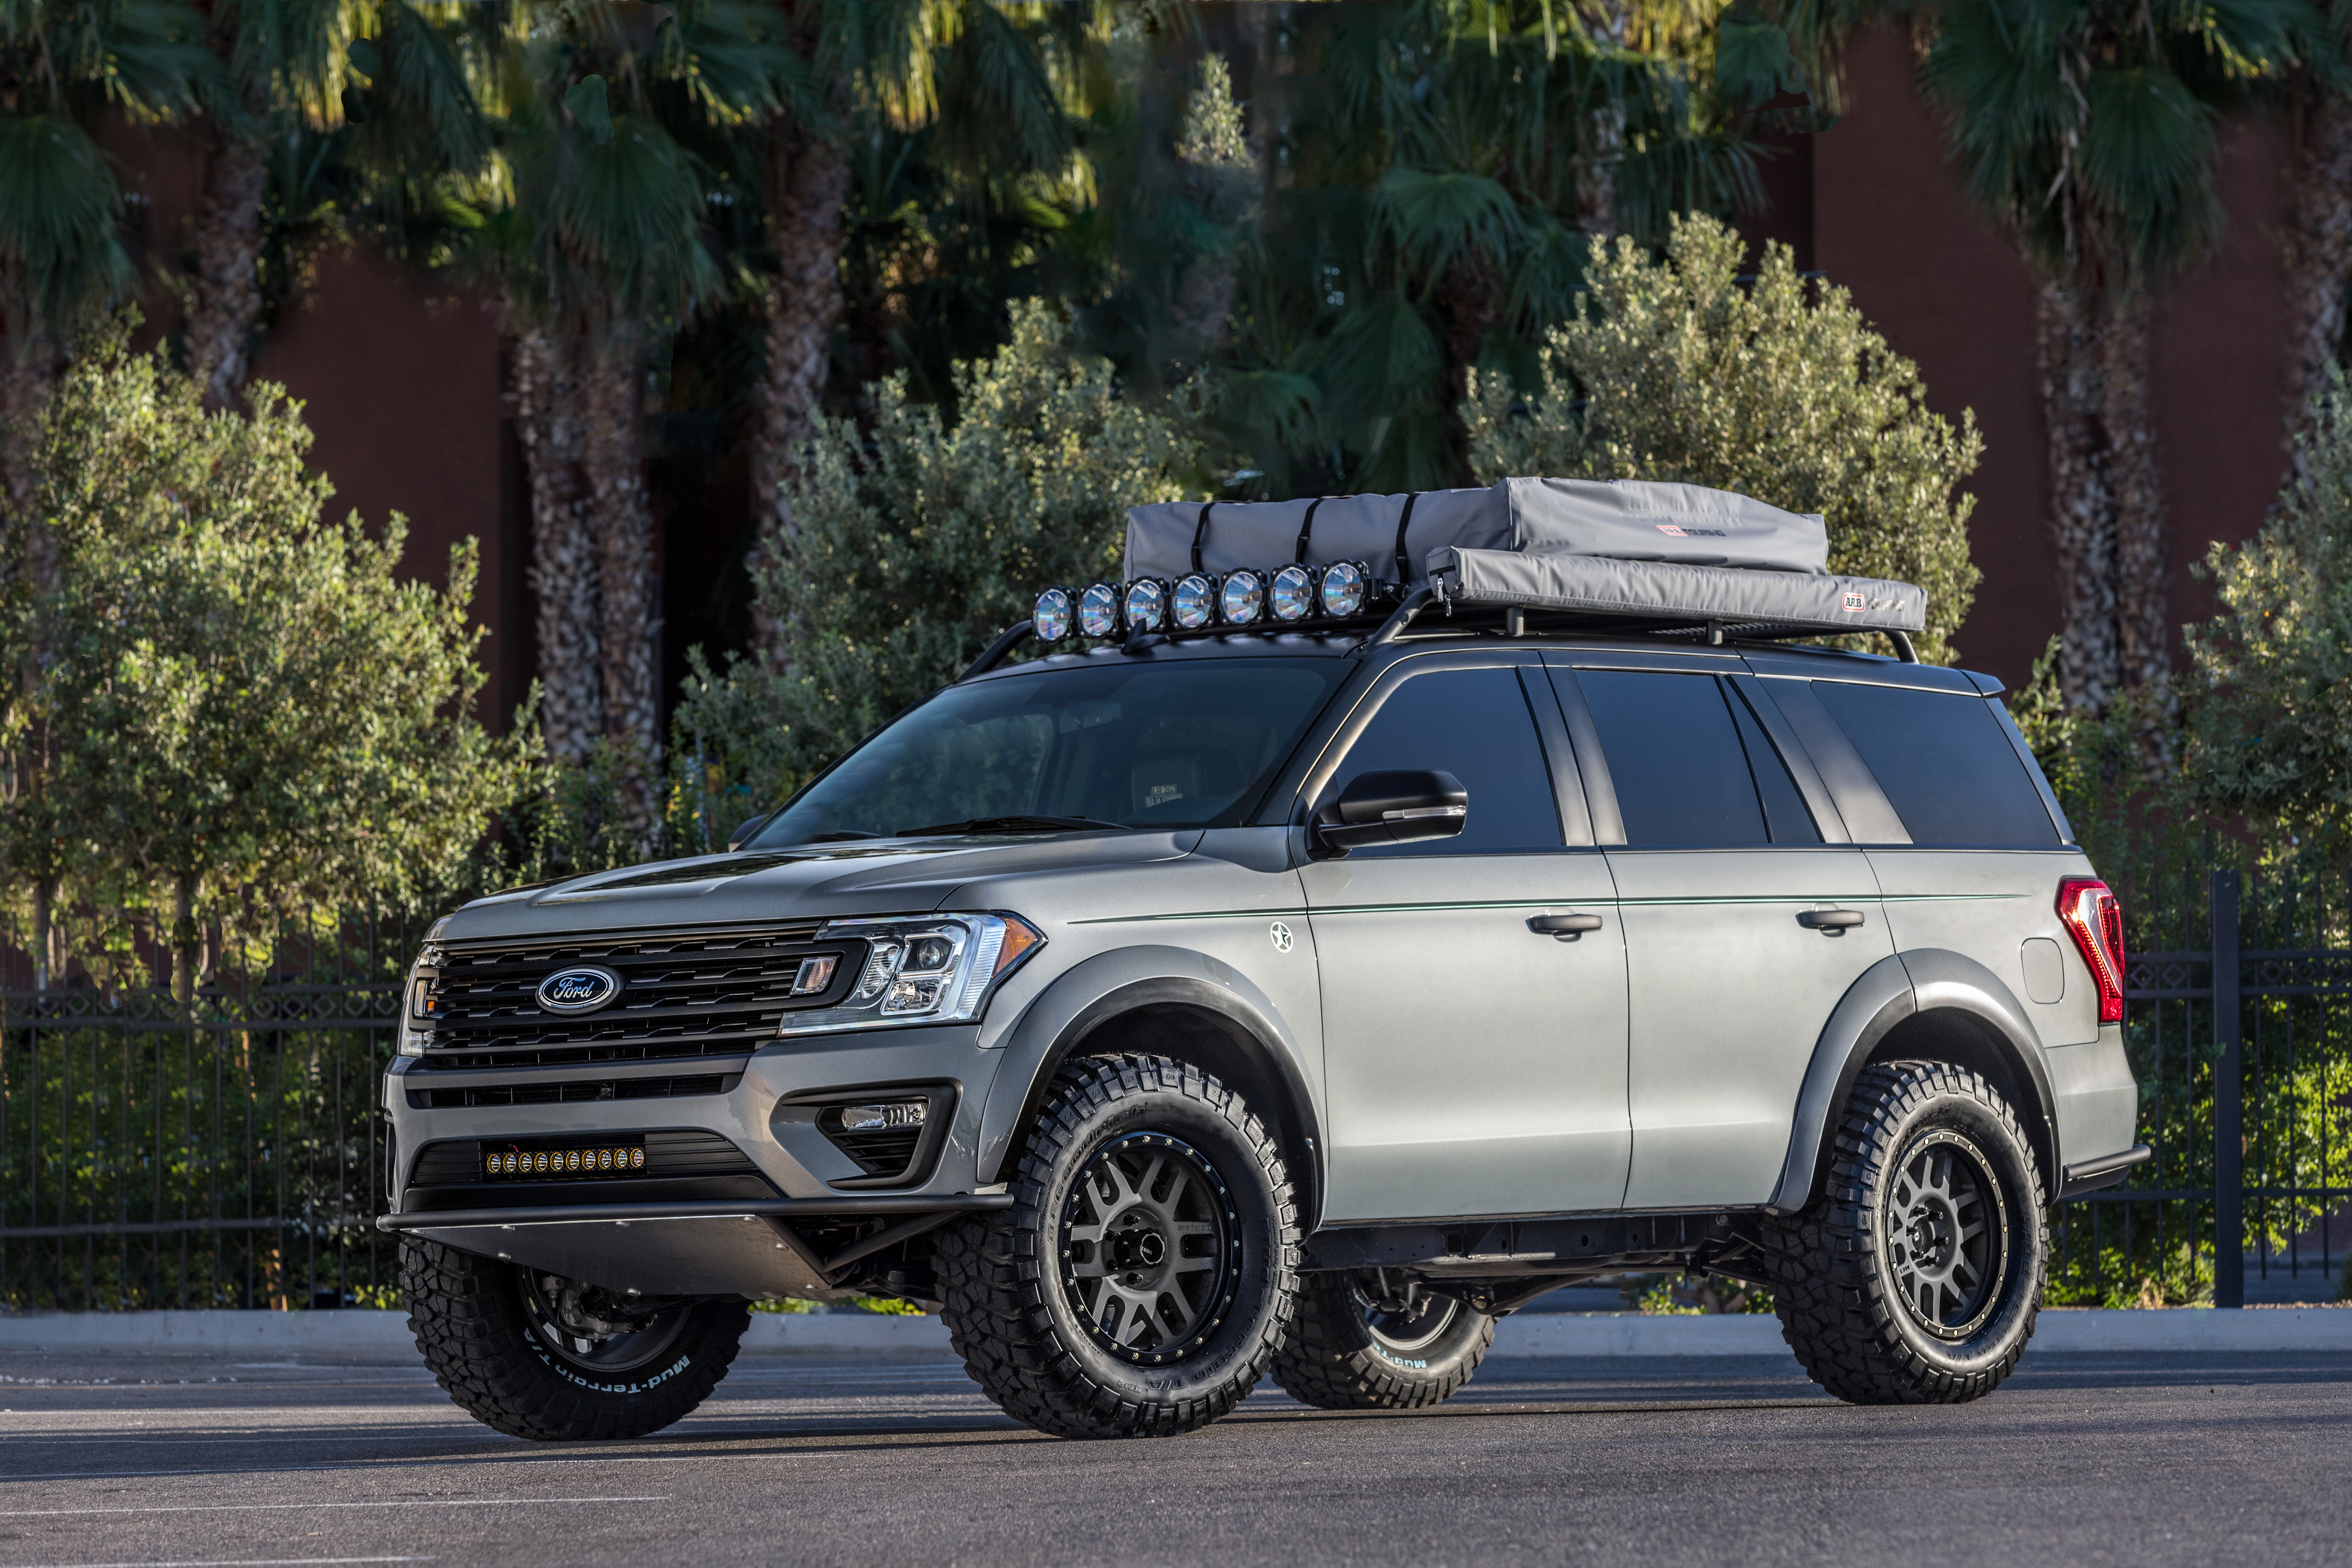 Ford Expedition mod specifications